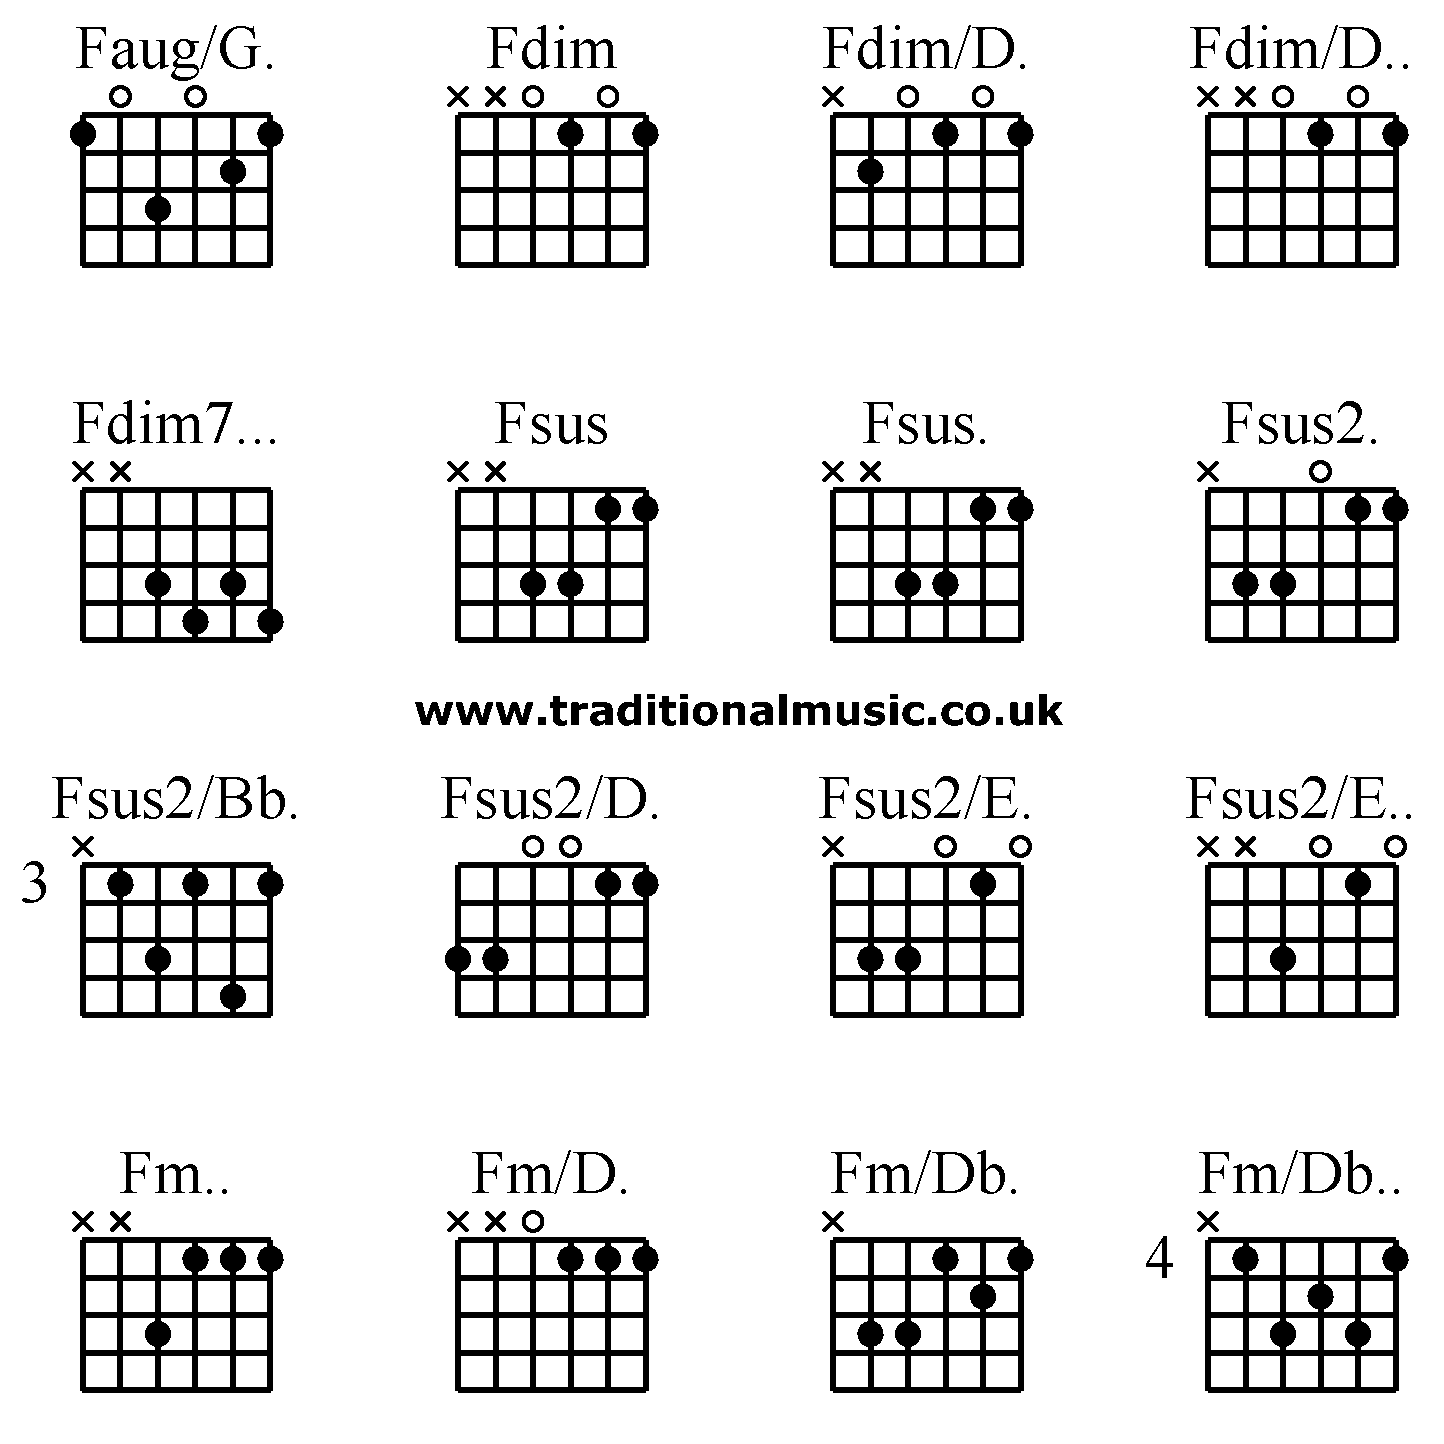 Guitar Chords Advanced Faugg Fdim Fdimd Fdimd Fdim7 Fsus